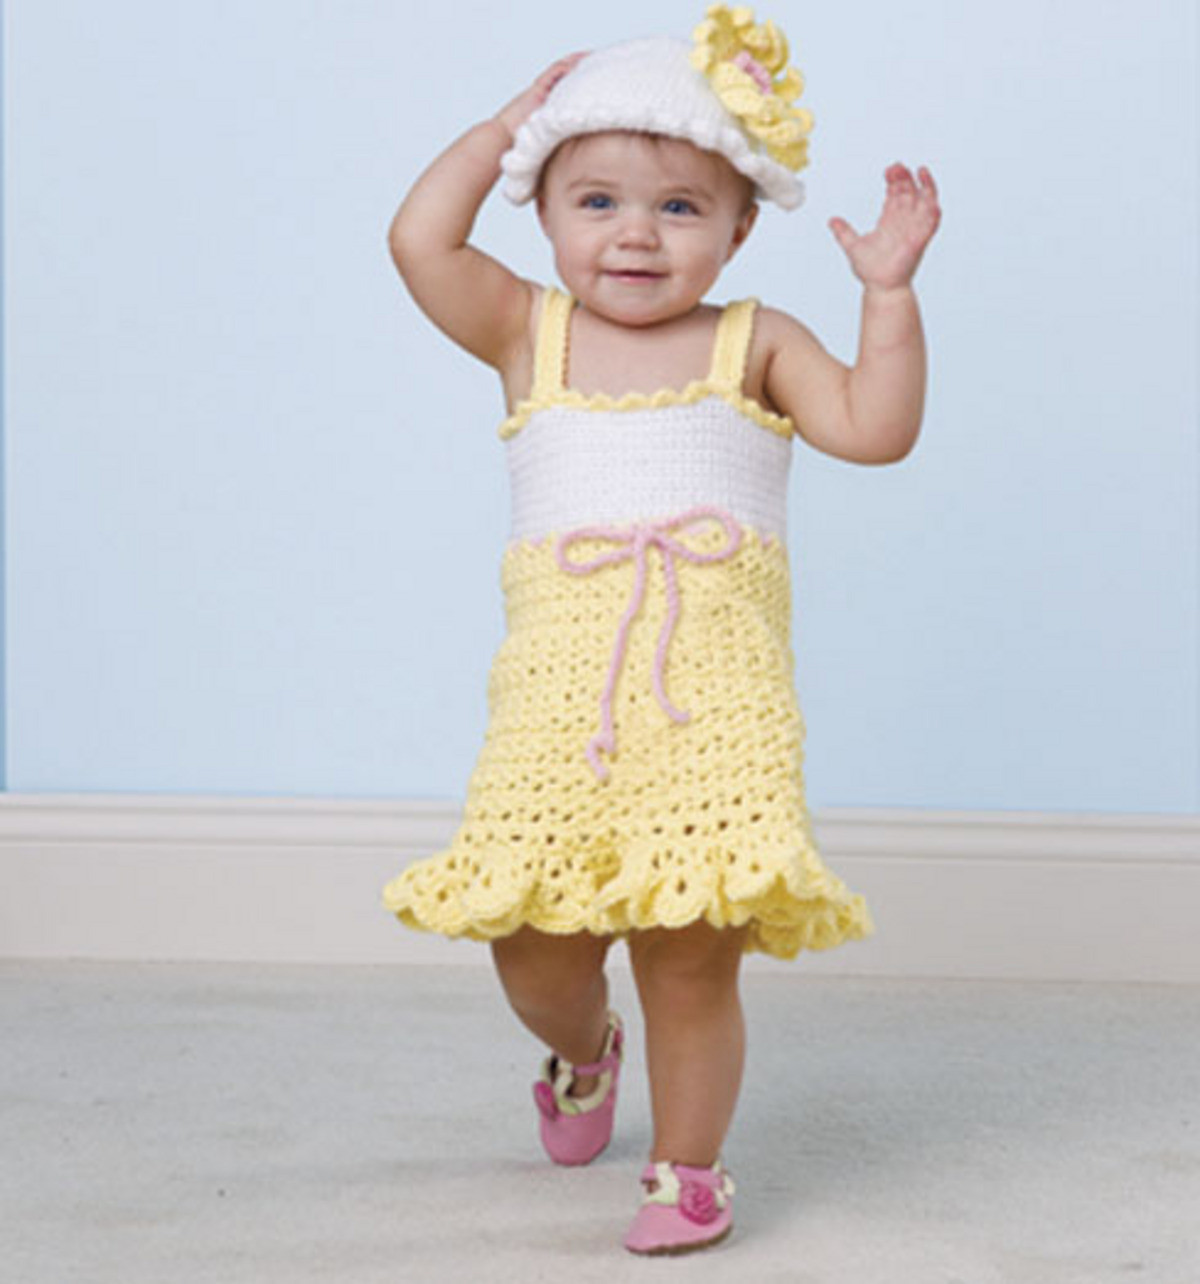 New Craftdrawer Crafts Free Crochet A Summer Baby Dress and Crochet Dress for Baby Of Amazing 42 Photos Crochet Dress for Baby